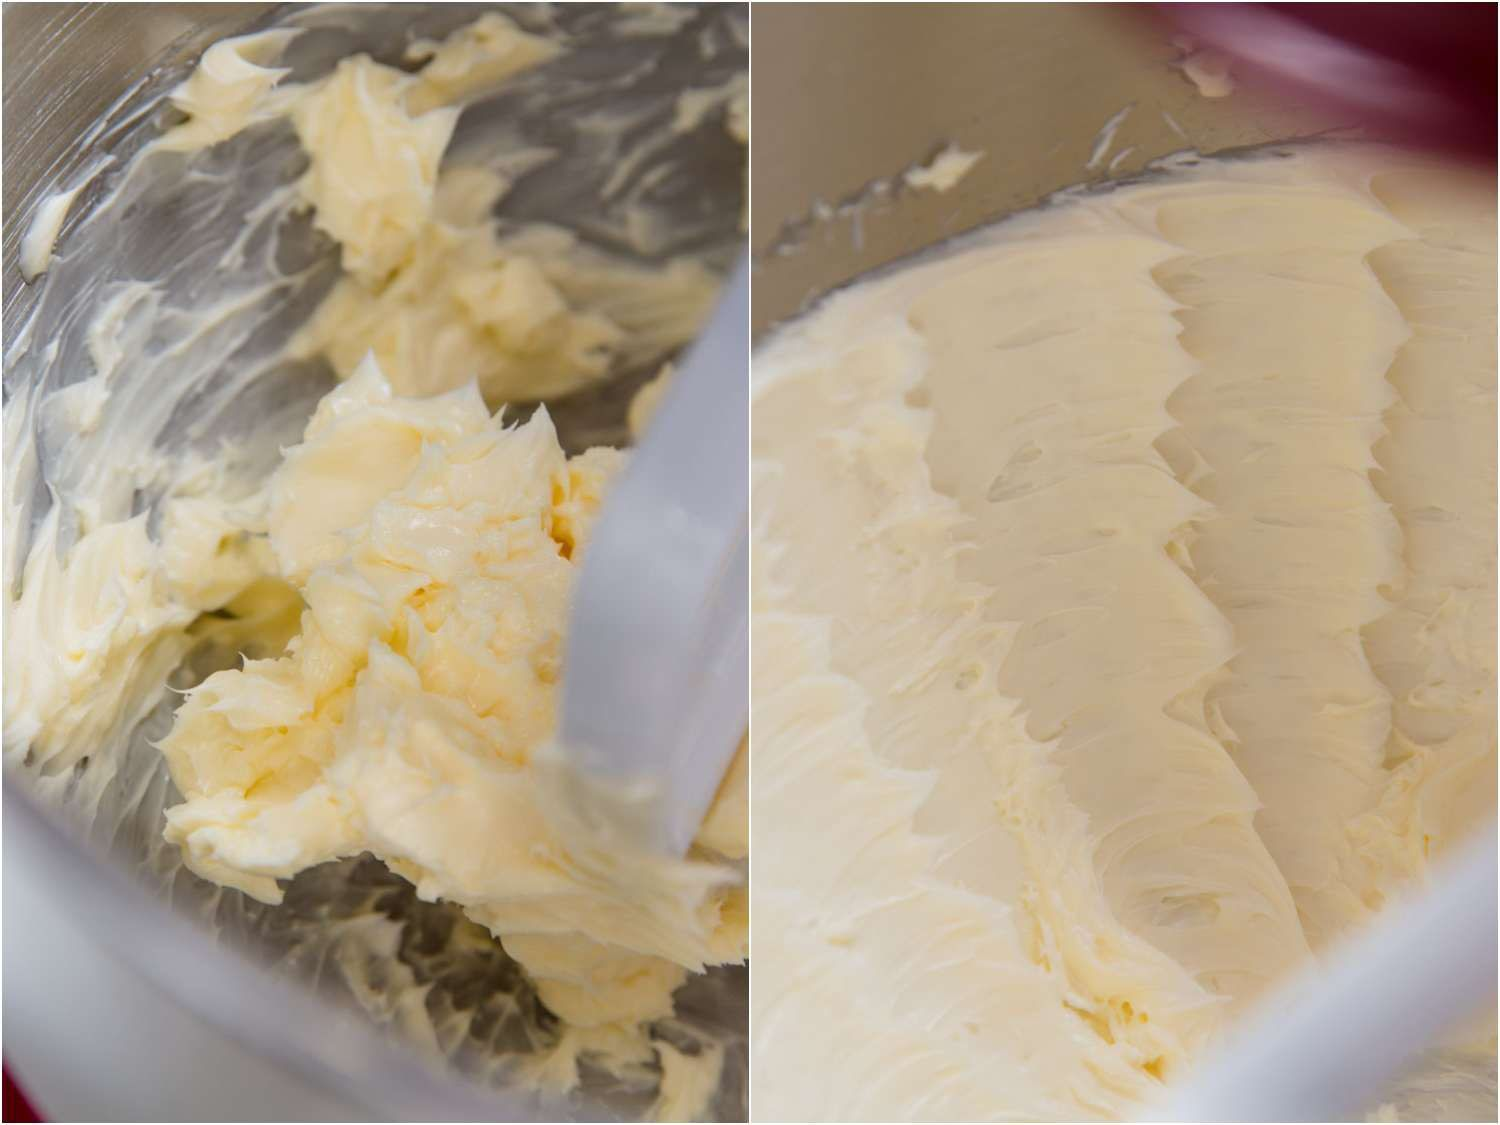 dense and dark butter at the start, creamy light and fluffy butter after creaming